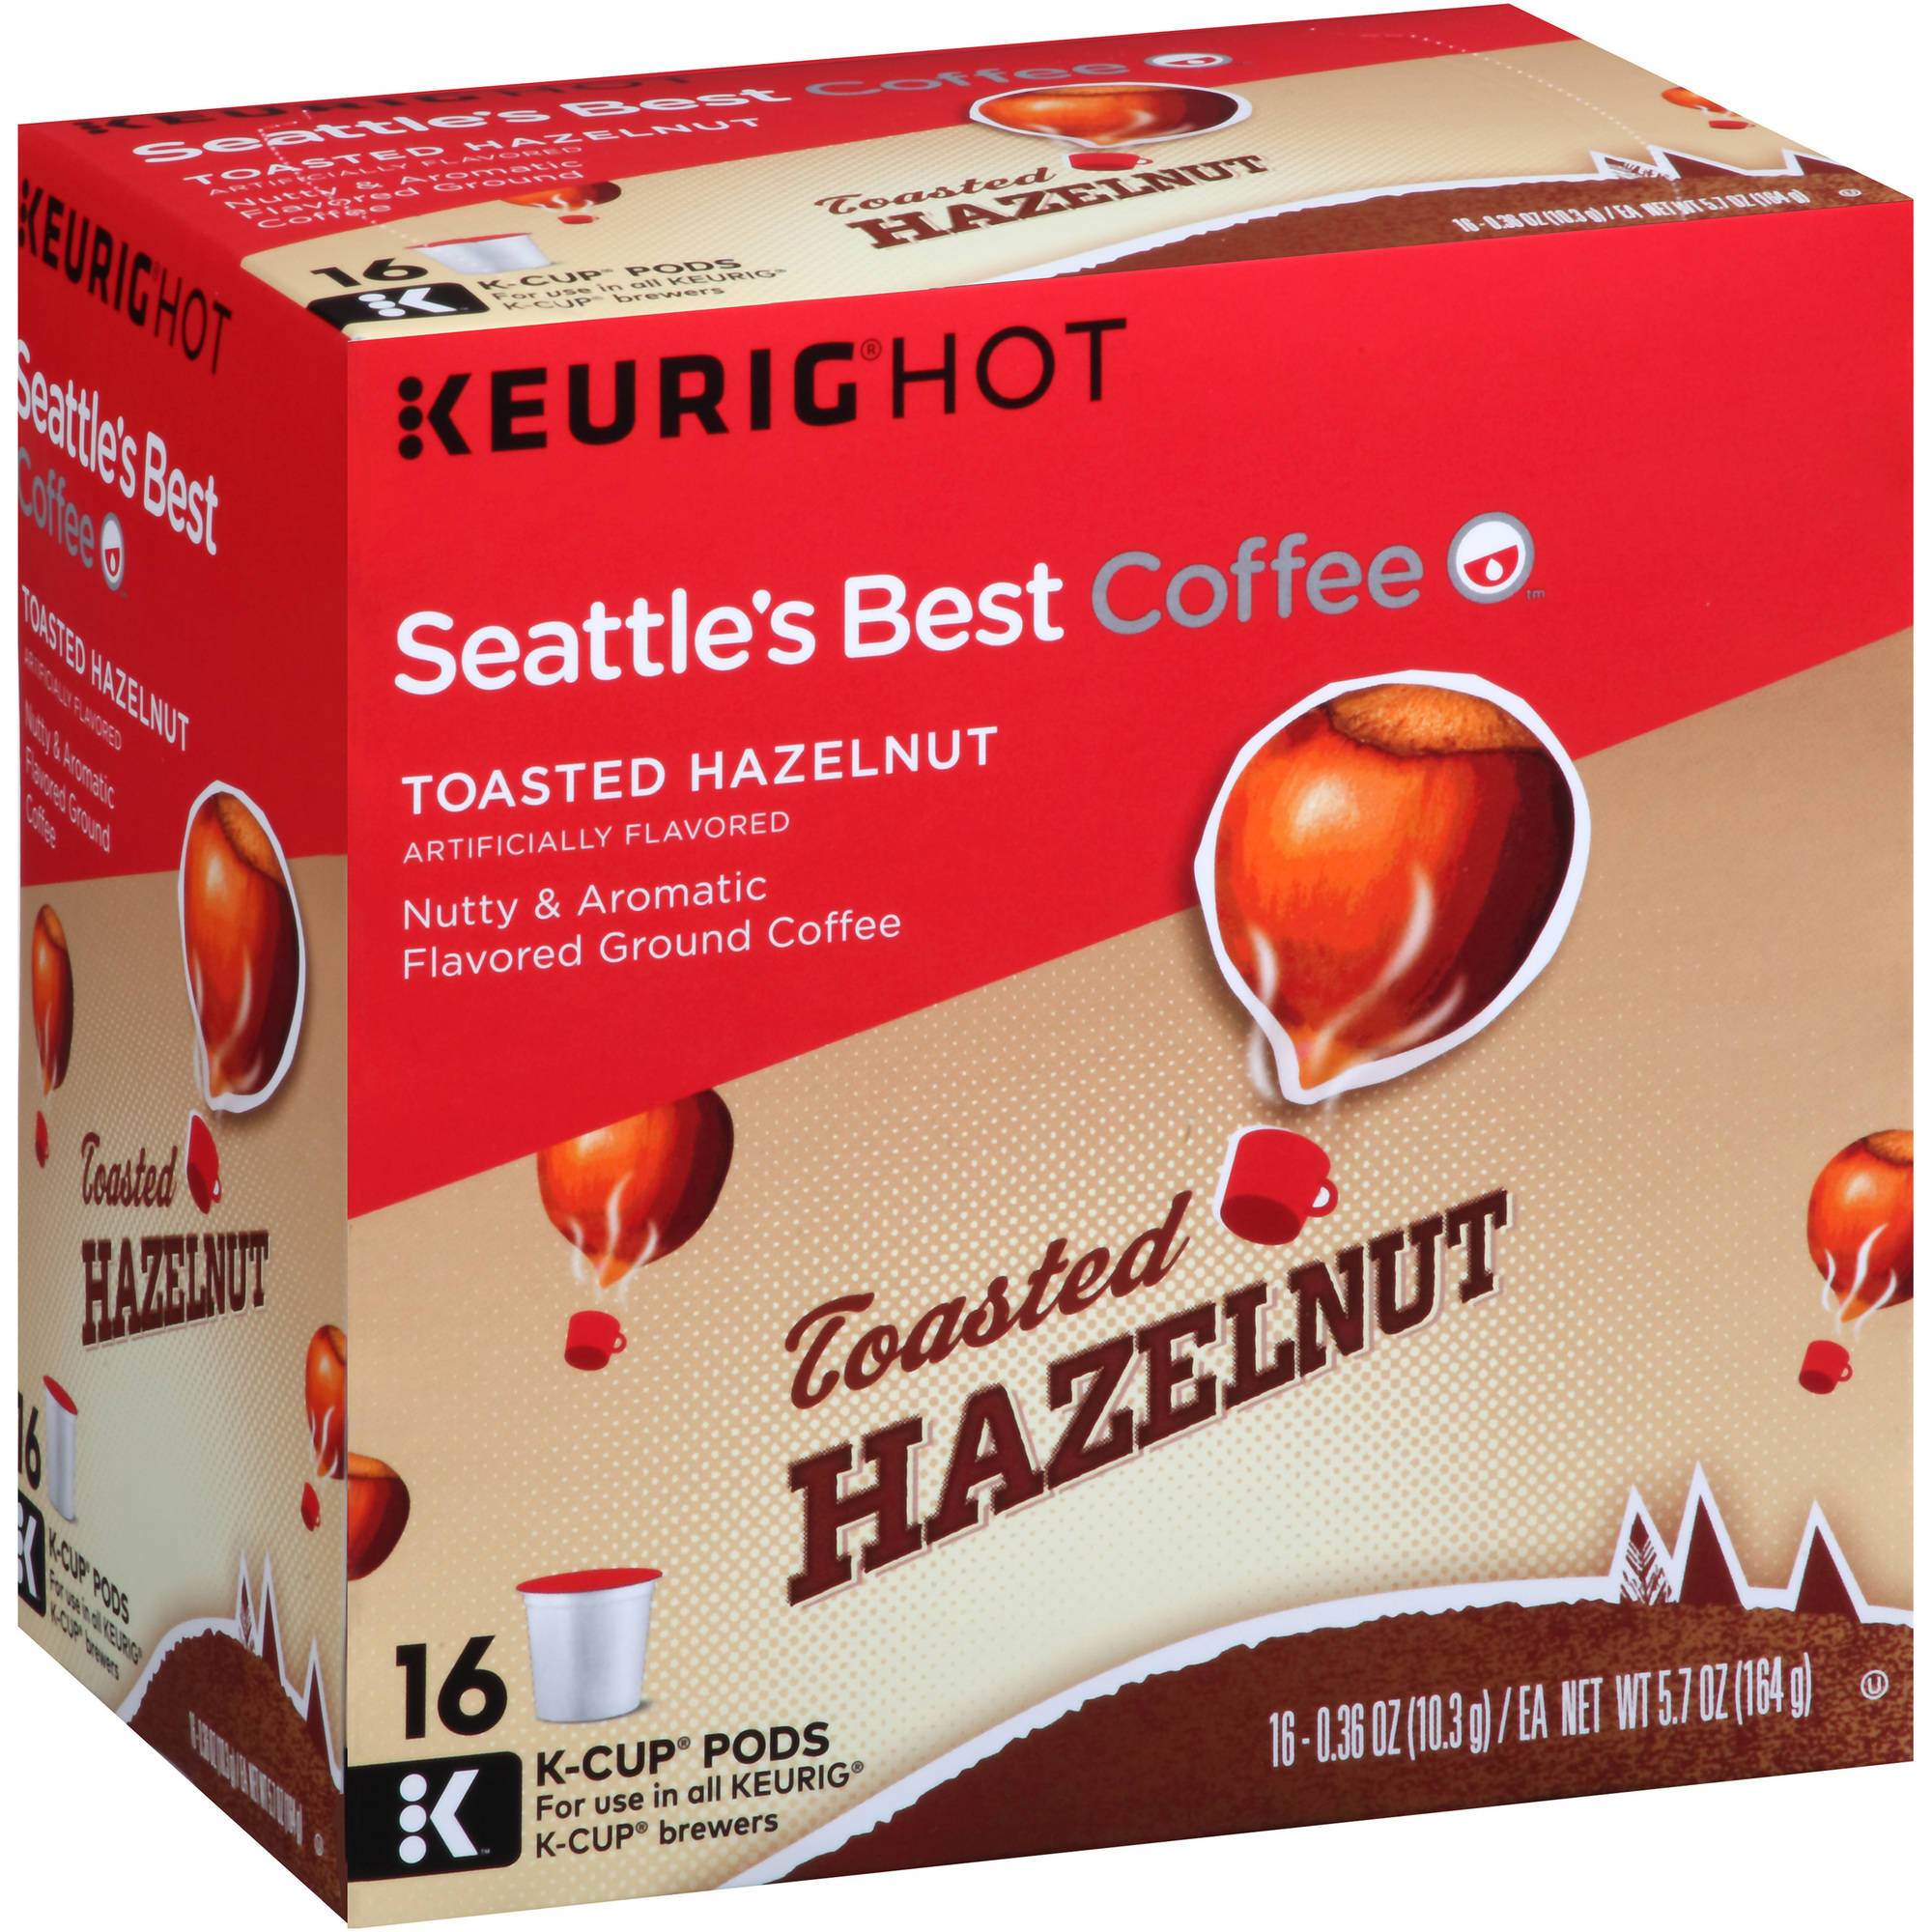 Seattle's Best Coffee Toasted Hazelnut Ground Coffee K-Cup Pods, 0.36 oz, 16 count